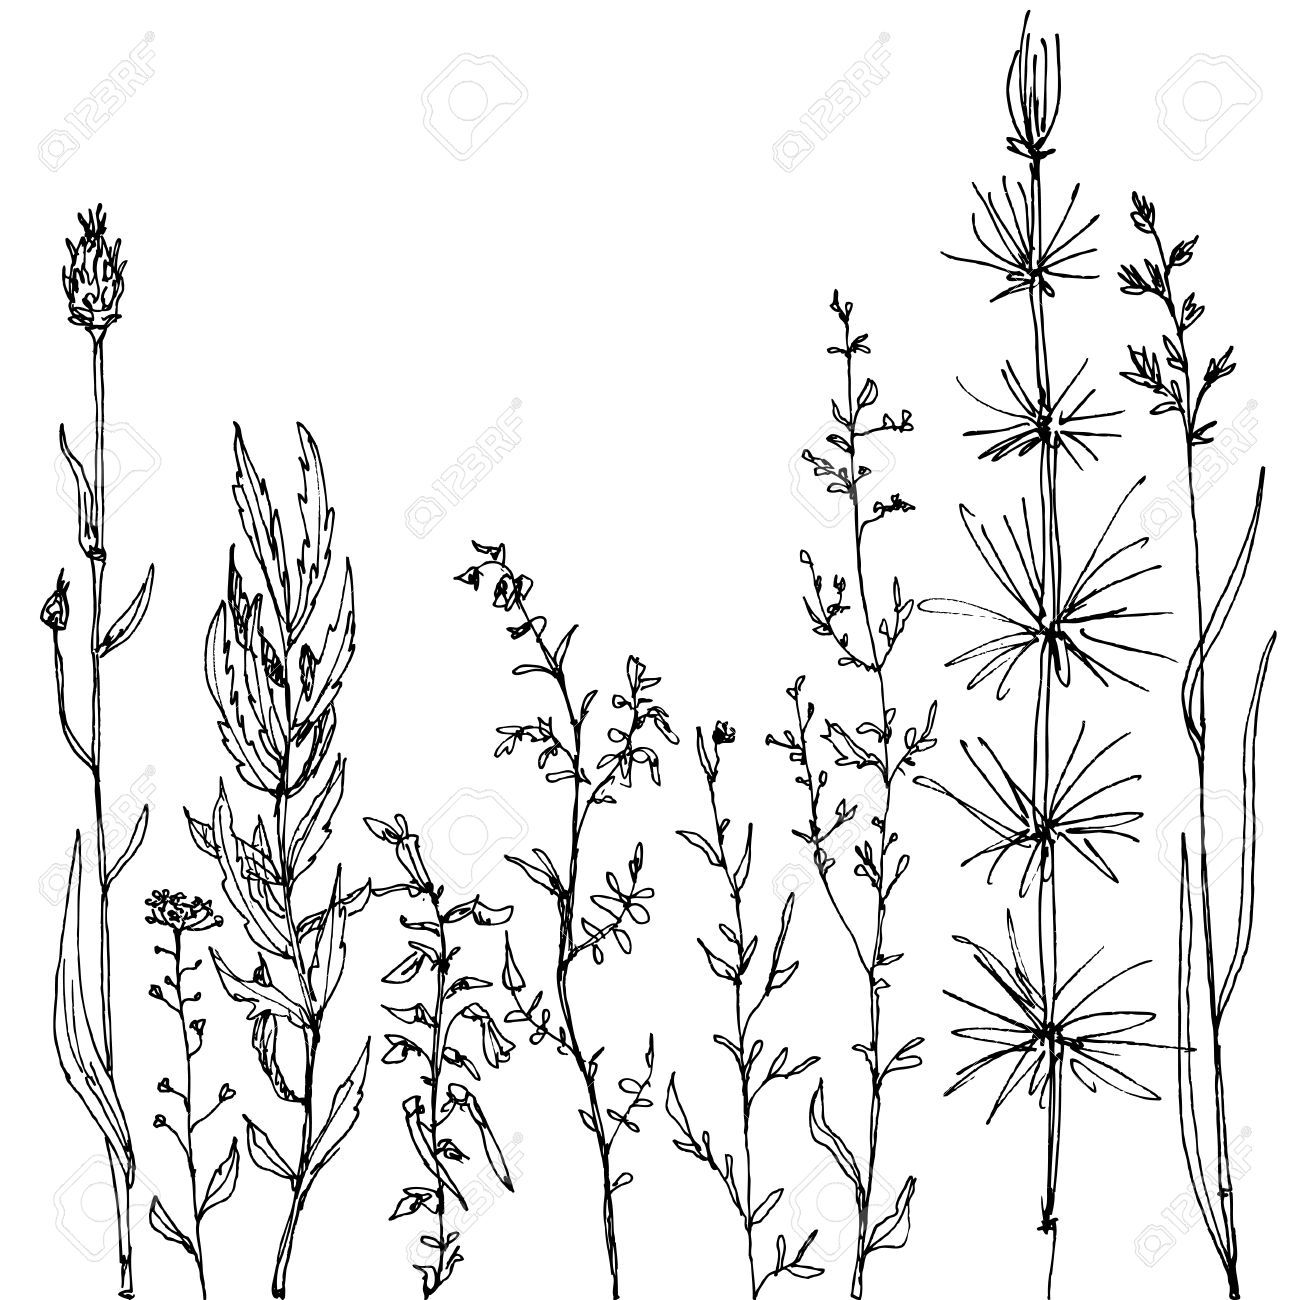 Flower Plant Line Drawing : Wild flower floral composition with ink drawing herbs and